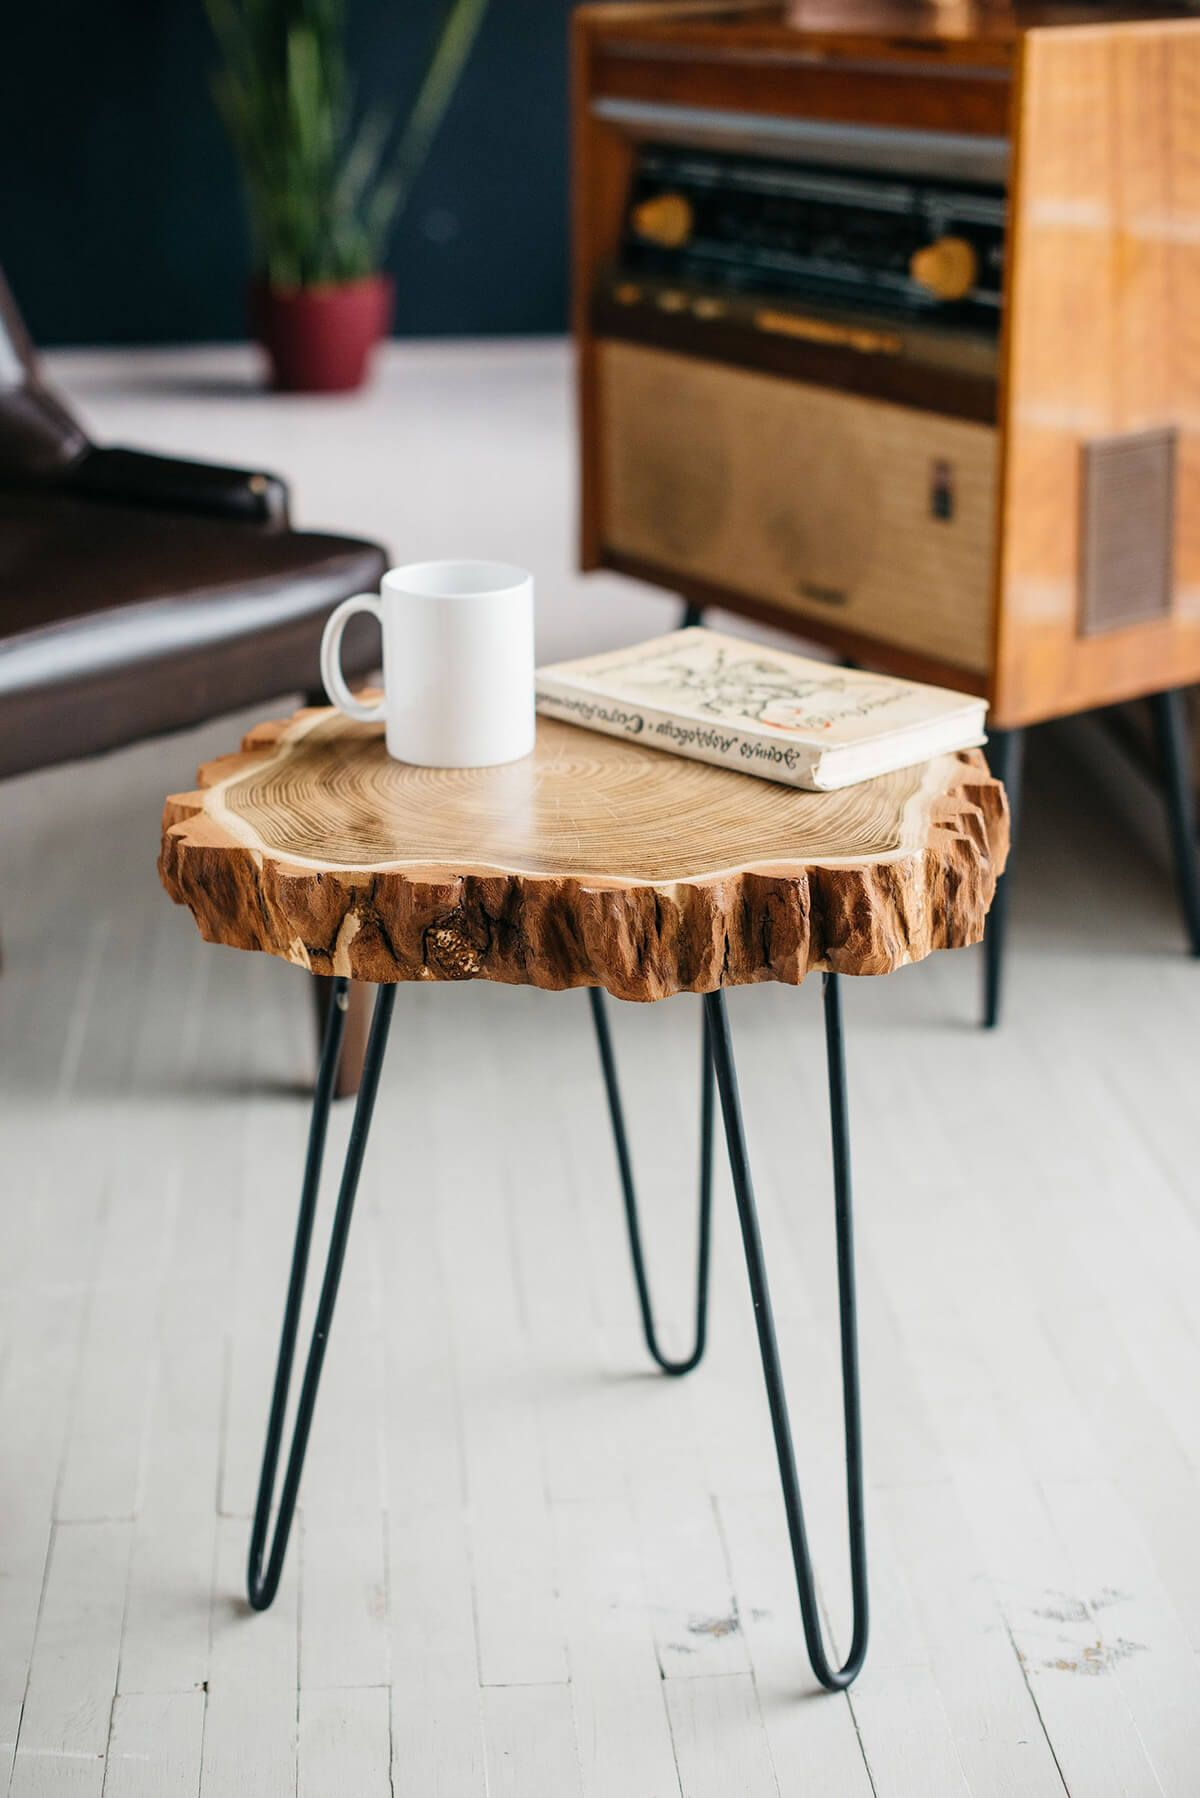 36 Beautiful Coffee Tables For All Living Room Styles Wood Slab Table Coffee Table Wood Rustic Coffee Tables [ 1798 x 1200 Pixel ]